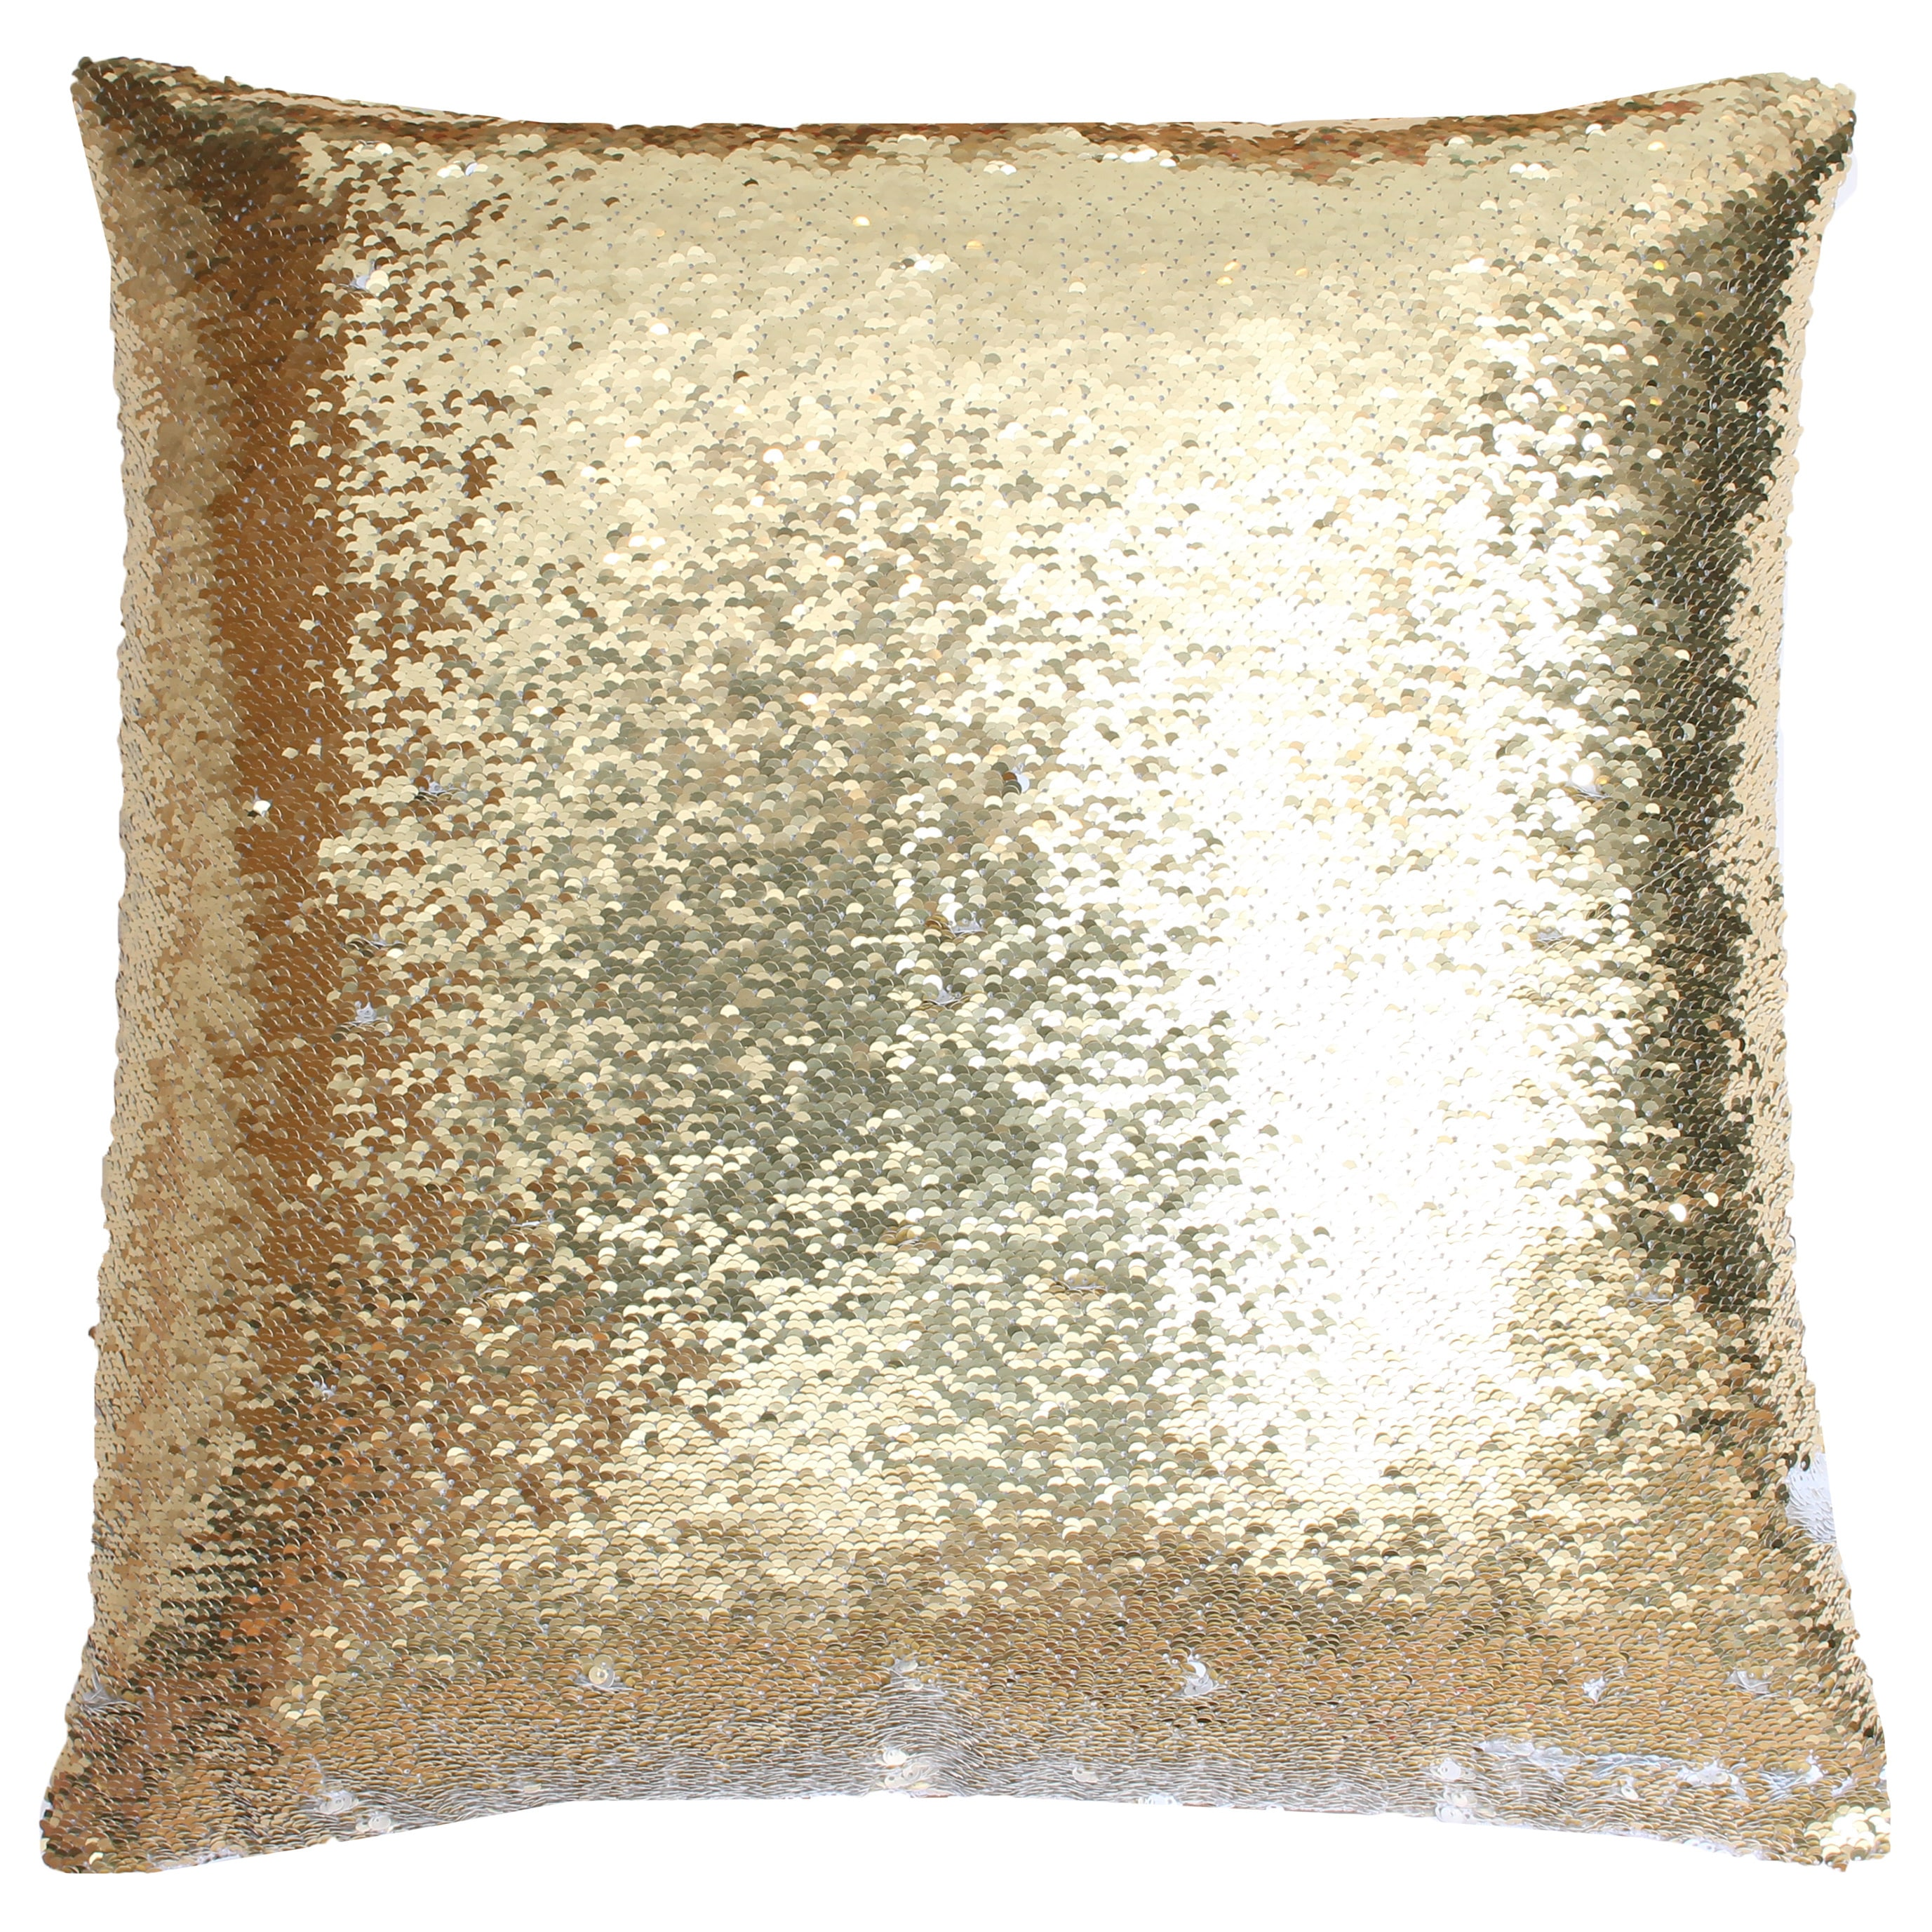 flip new sequin with and emoji flipping change to the back faces pillow sequins pin forth pillows